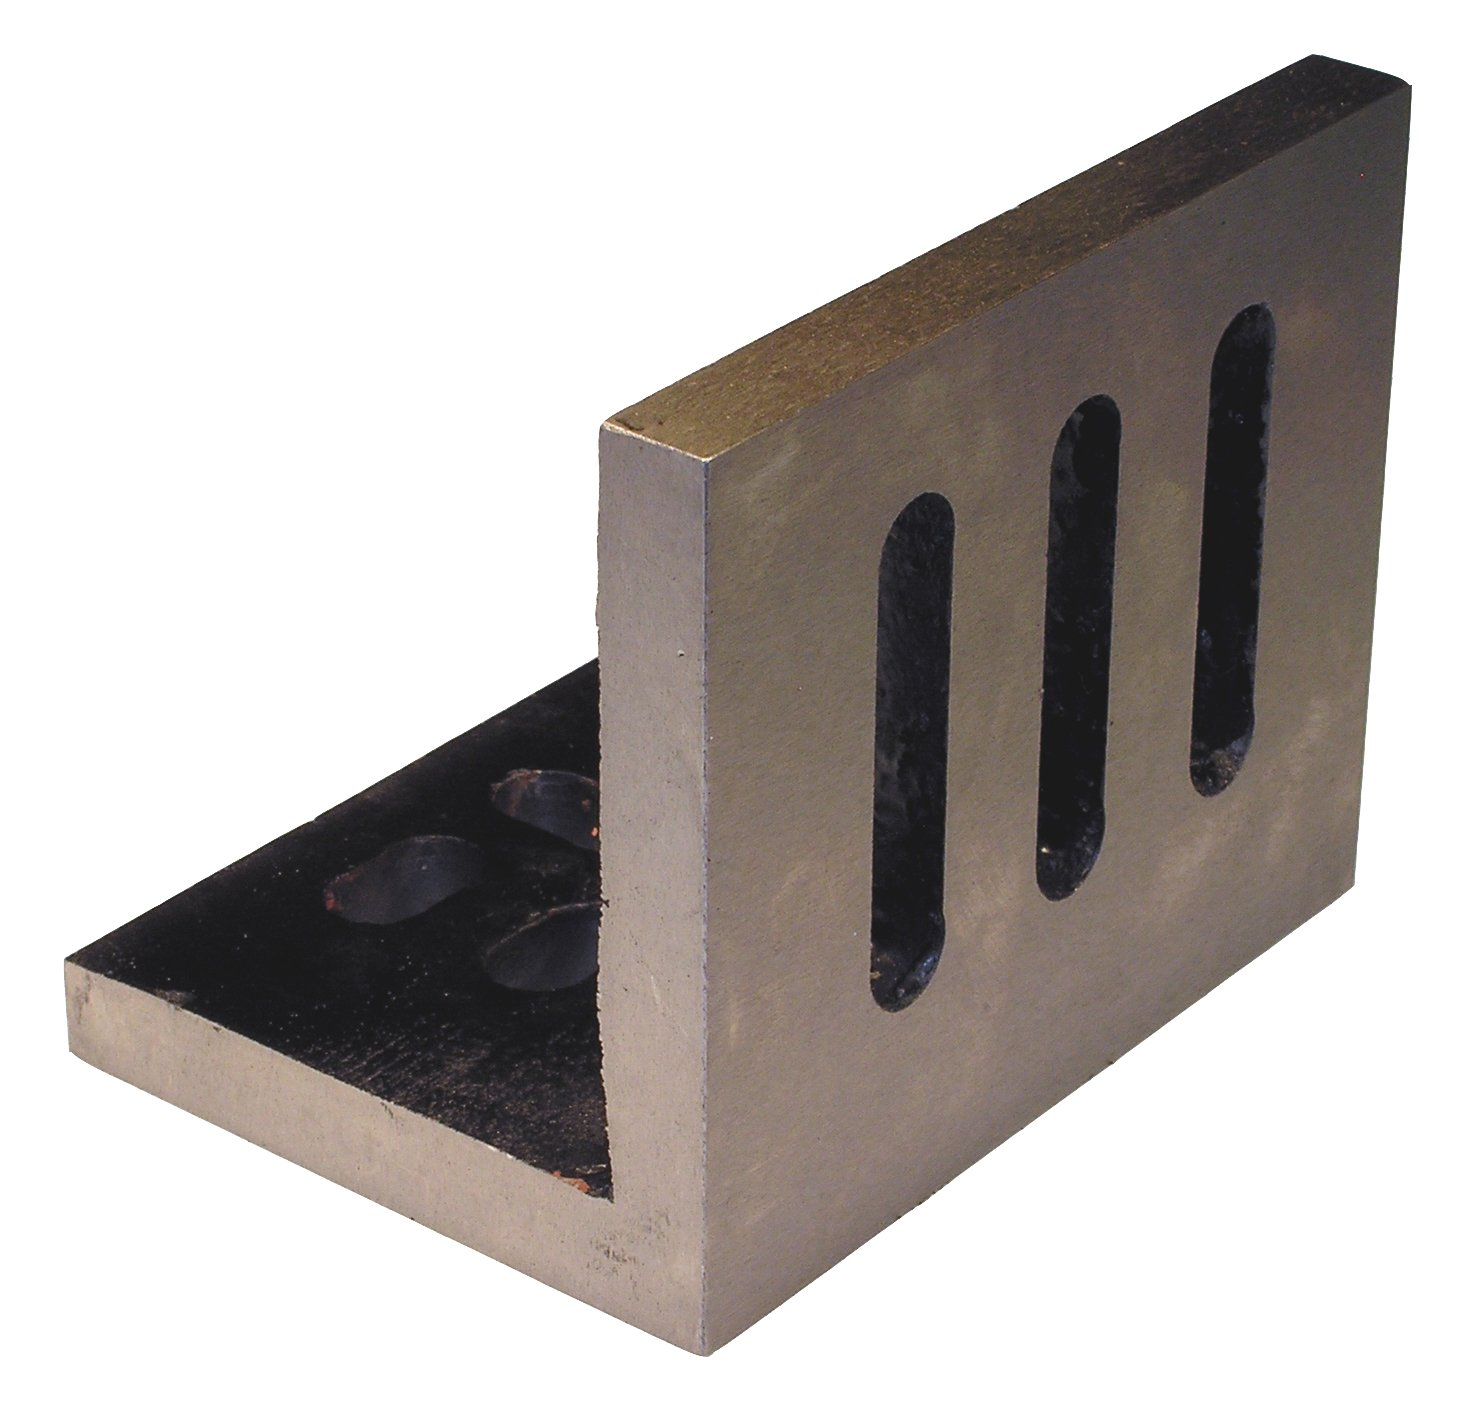 Value Line 12 x 9 x 8 Slotted Angle Plate - Open - Ground by Suburban Tool